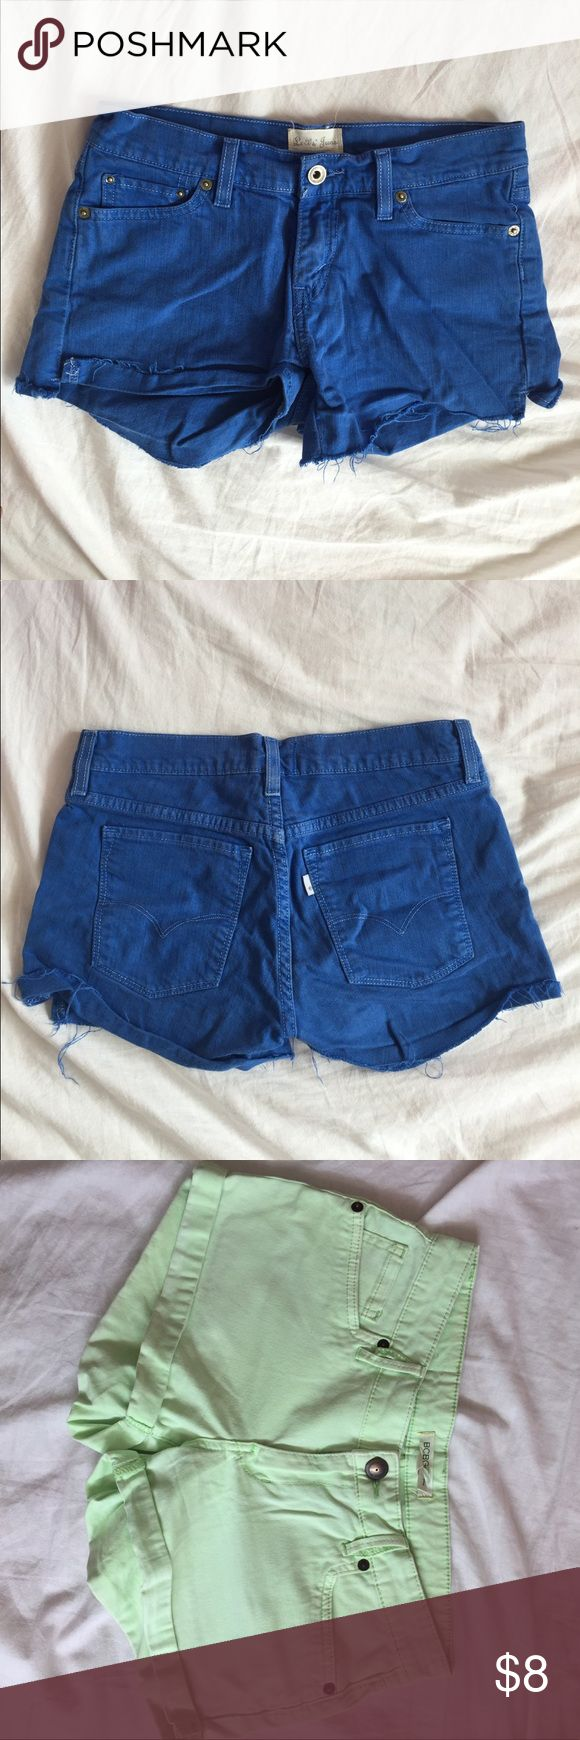 Shorts bundle Both fit true to size. Only the limb color one is BCBGeneration. BCBG is size 25 but fits like 26 BCBGeneration Shorts